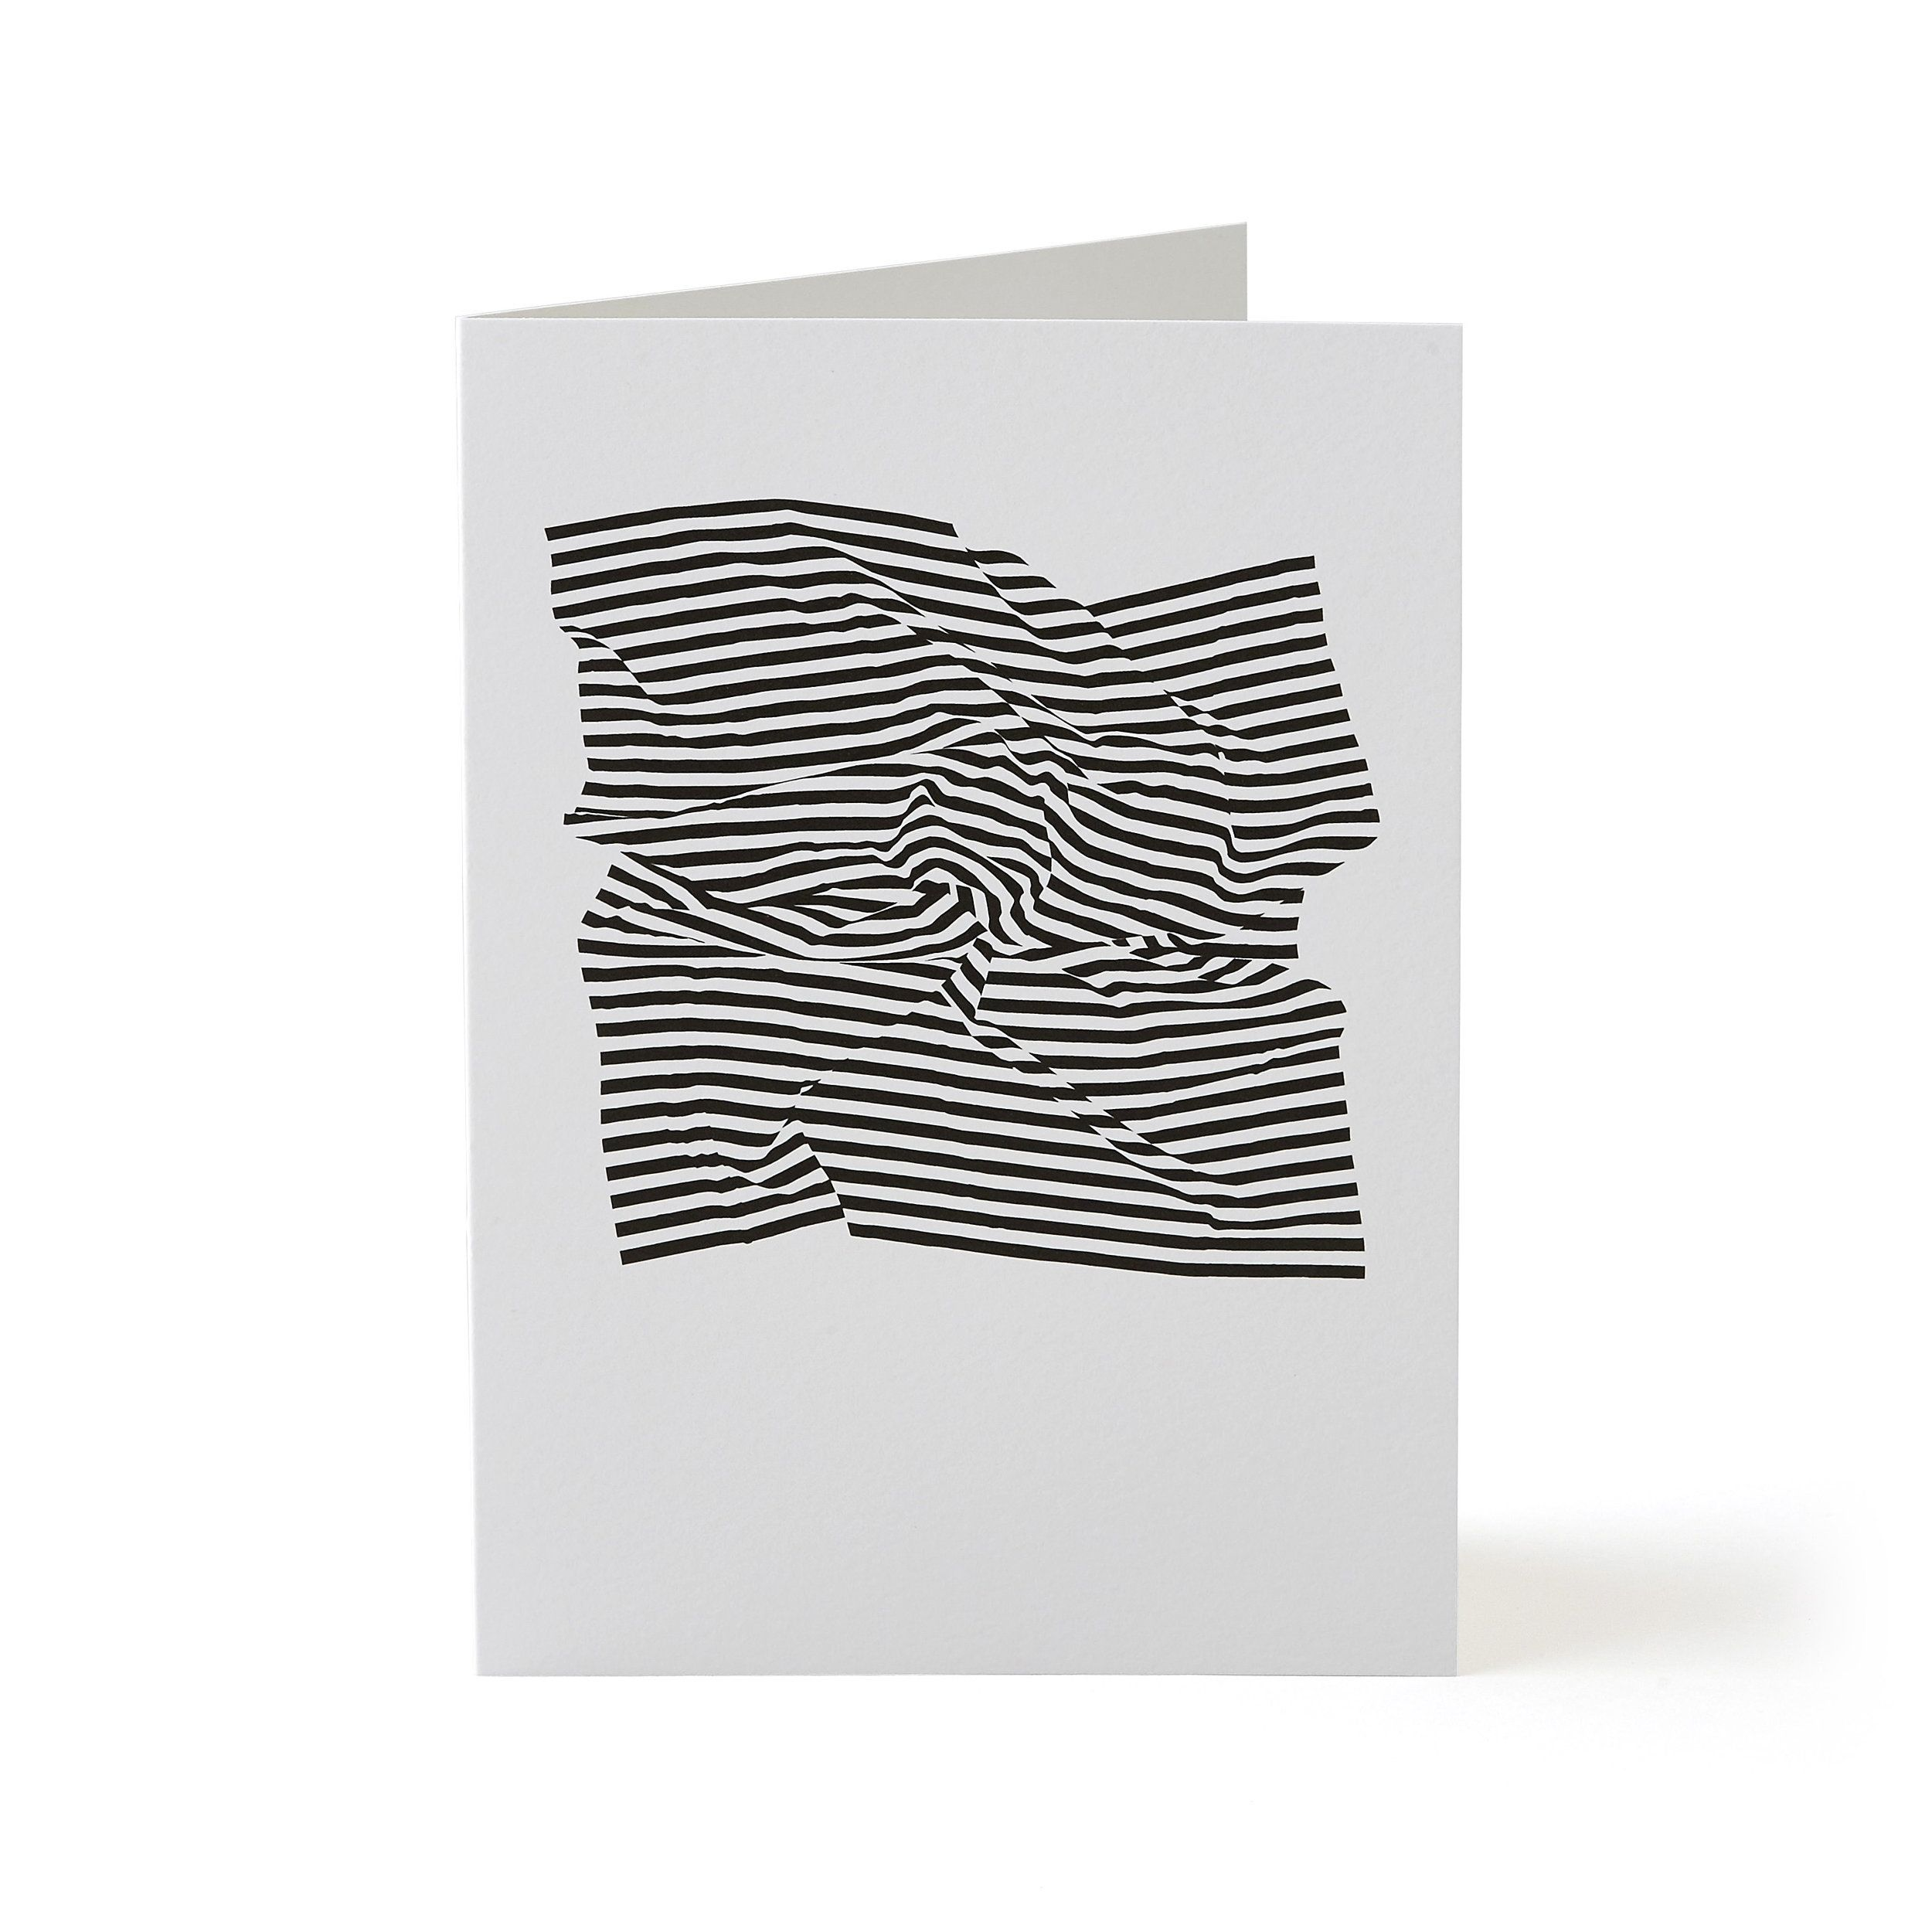 Our bestselling designs are now available as luxury greeting cards our bestselling designs are now available as luxury greeting cards printed on thick matt m4hsunfo